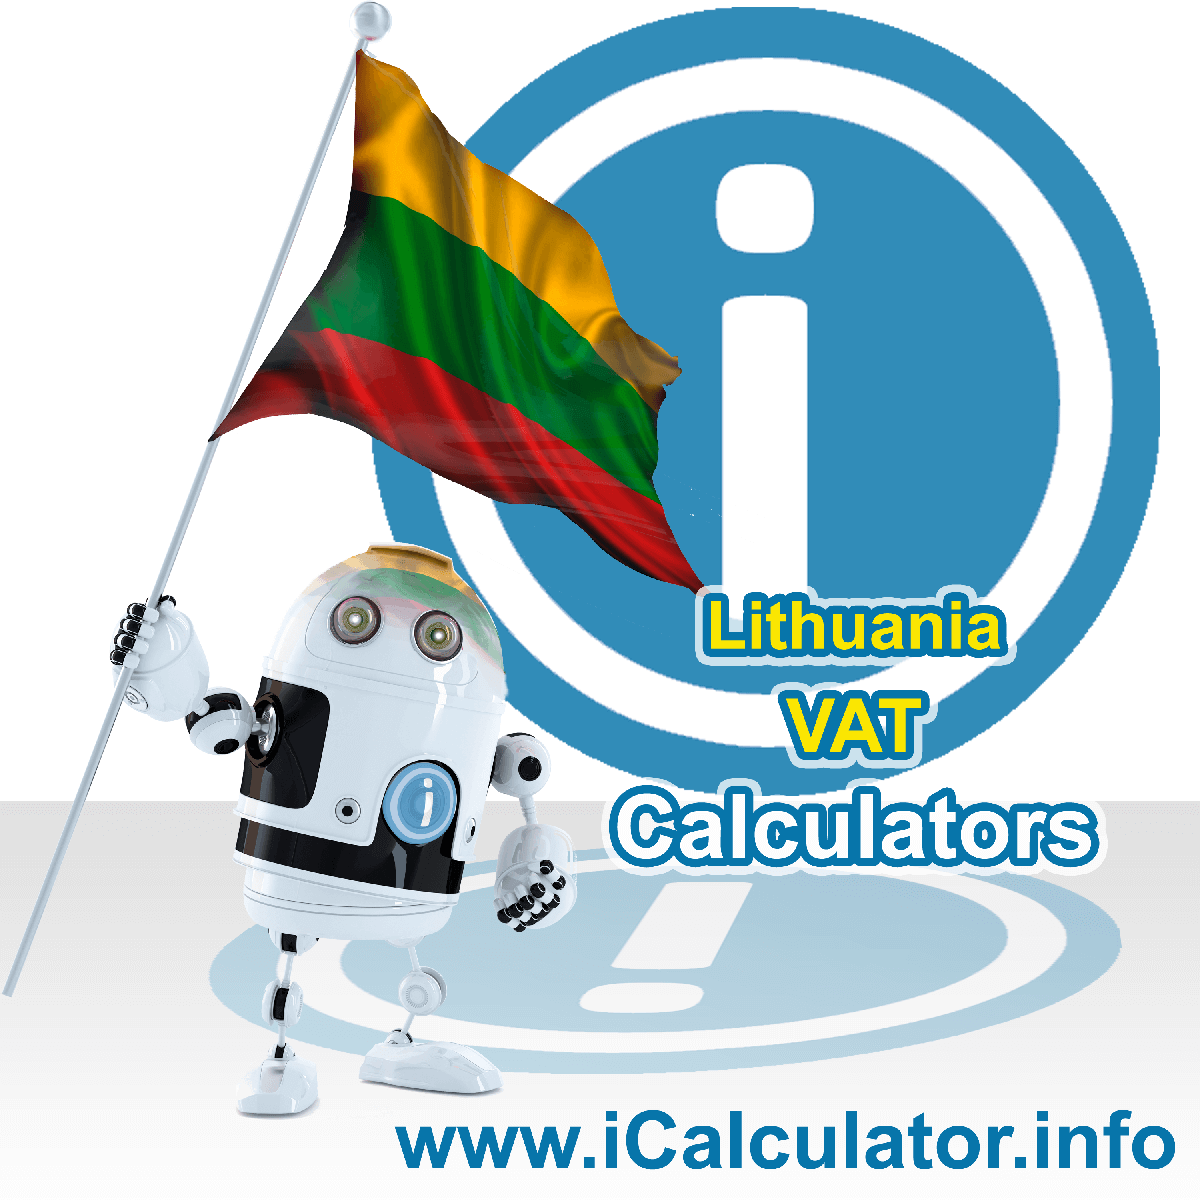 Lithuania VAT Calculator. This image shows the Lithuania flag and information relating to the VAT formula used for calculating Value Added Tax in Lithuania using the Lithuania VAT Calculator in 2020